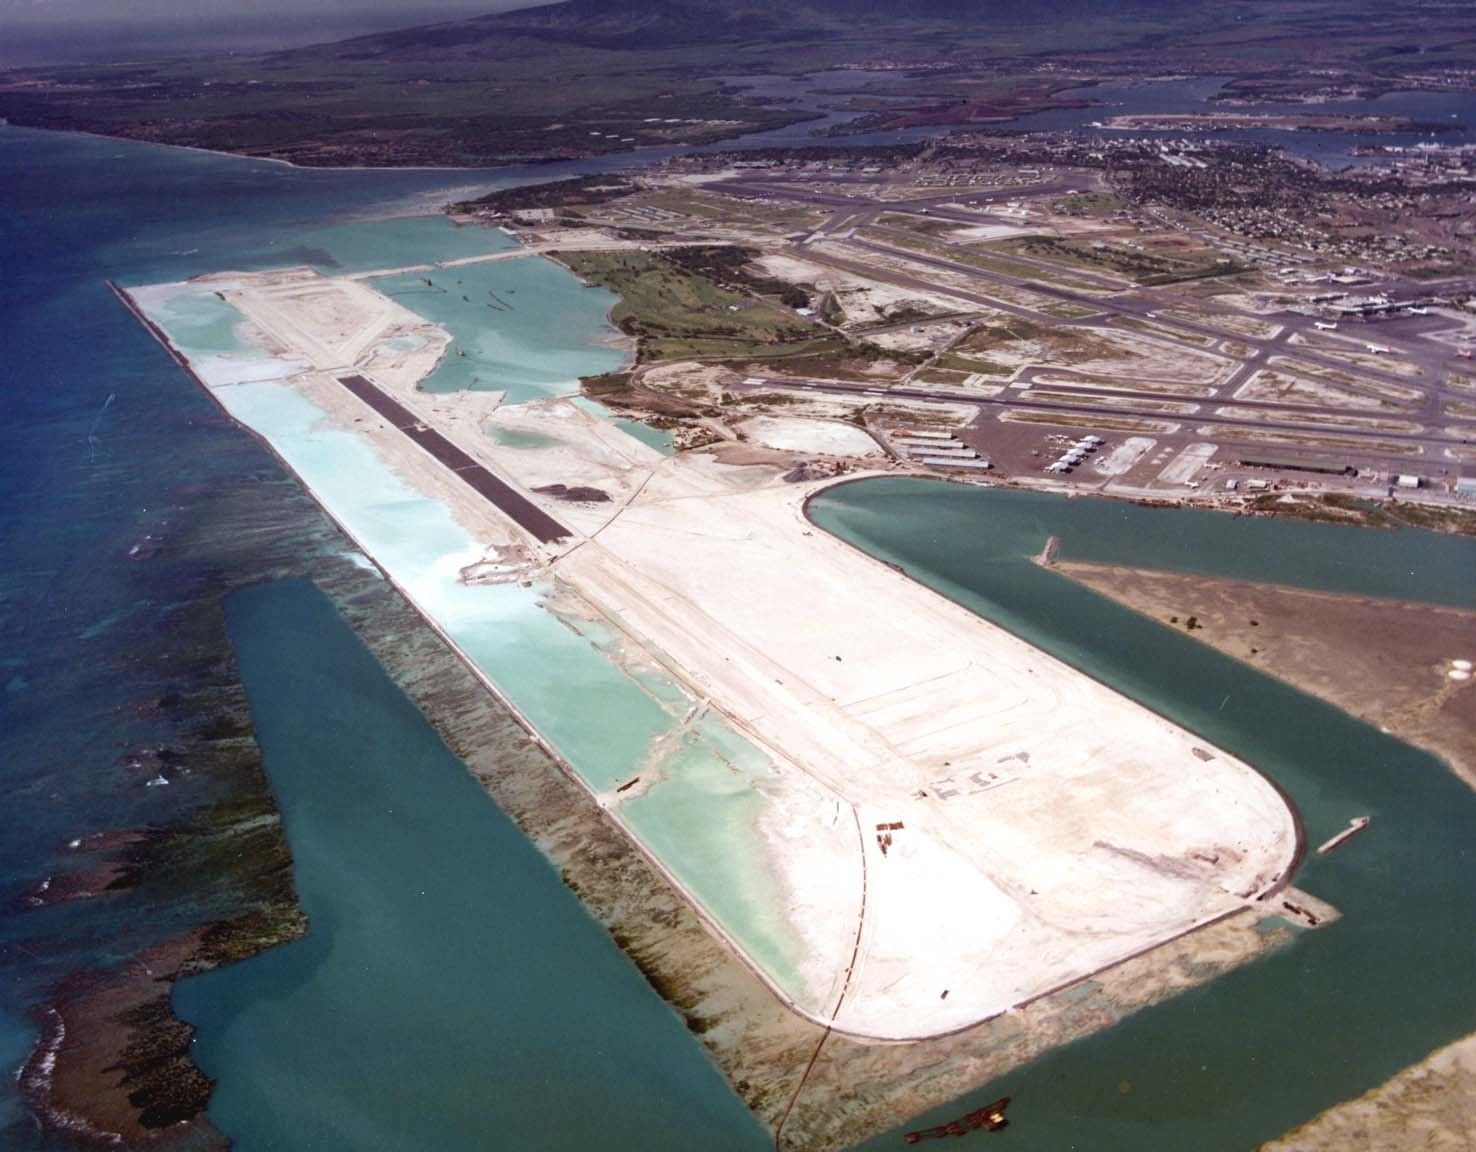 What Is The Major Airport On The Island Of Hawaii